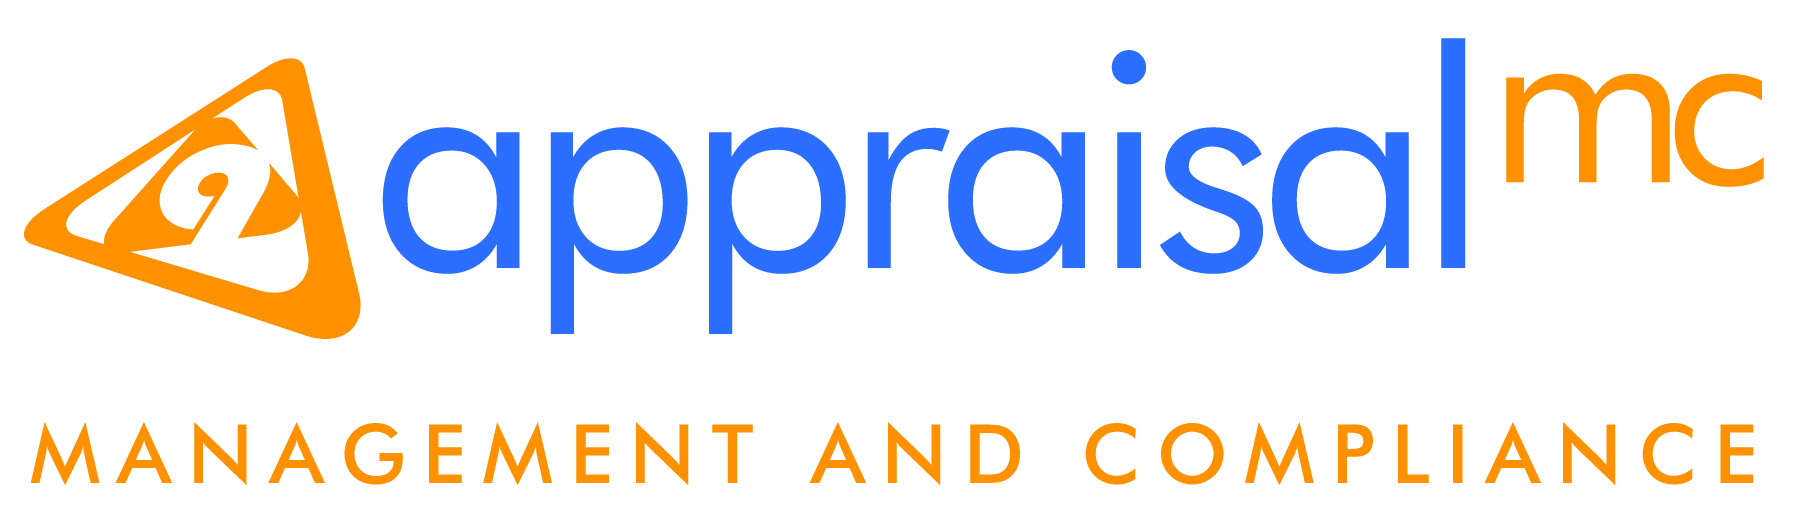 Appraisal MC  is an approved Appraisals company by LendSure